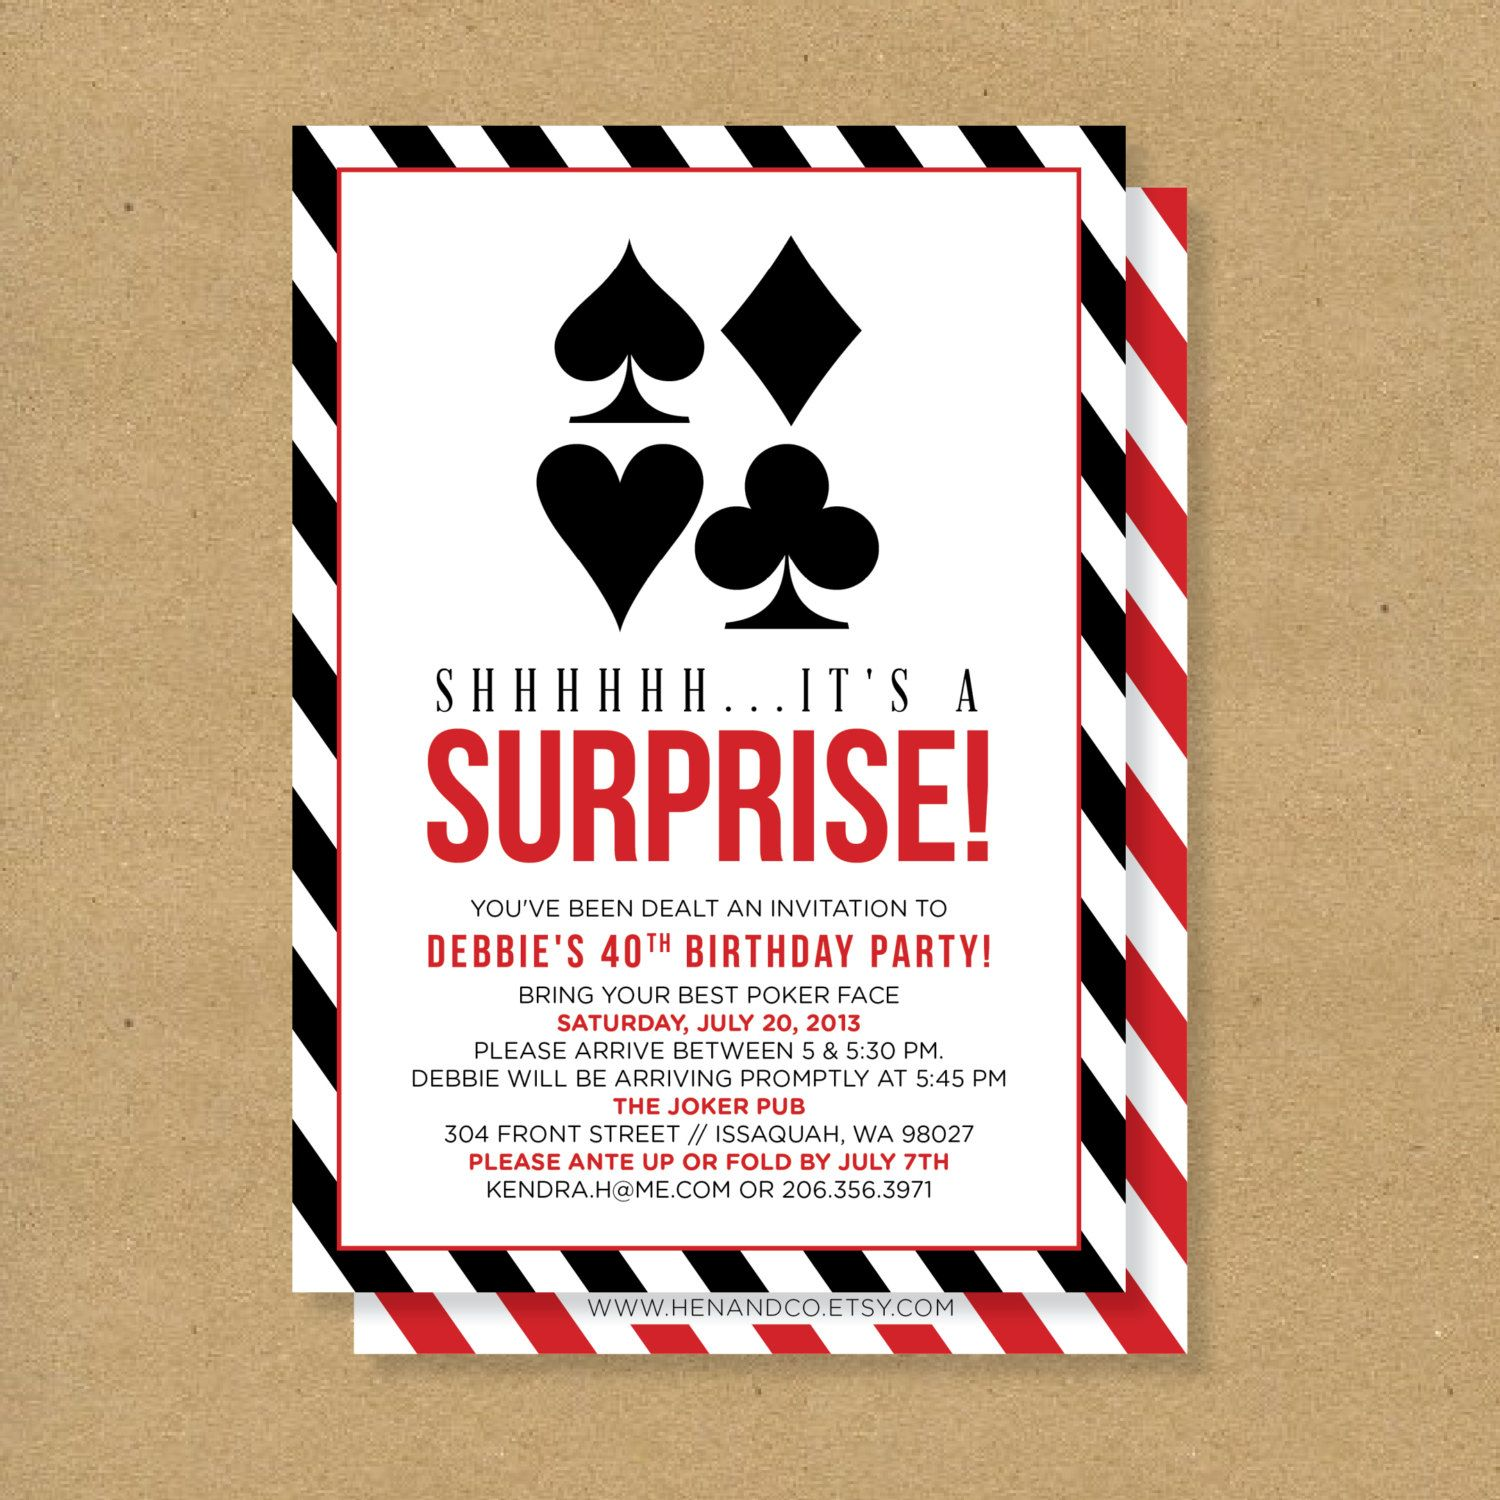 Party invitations casino theme state gambling revenues